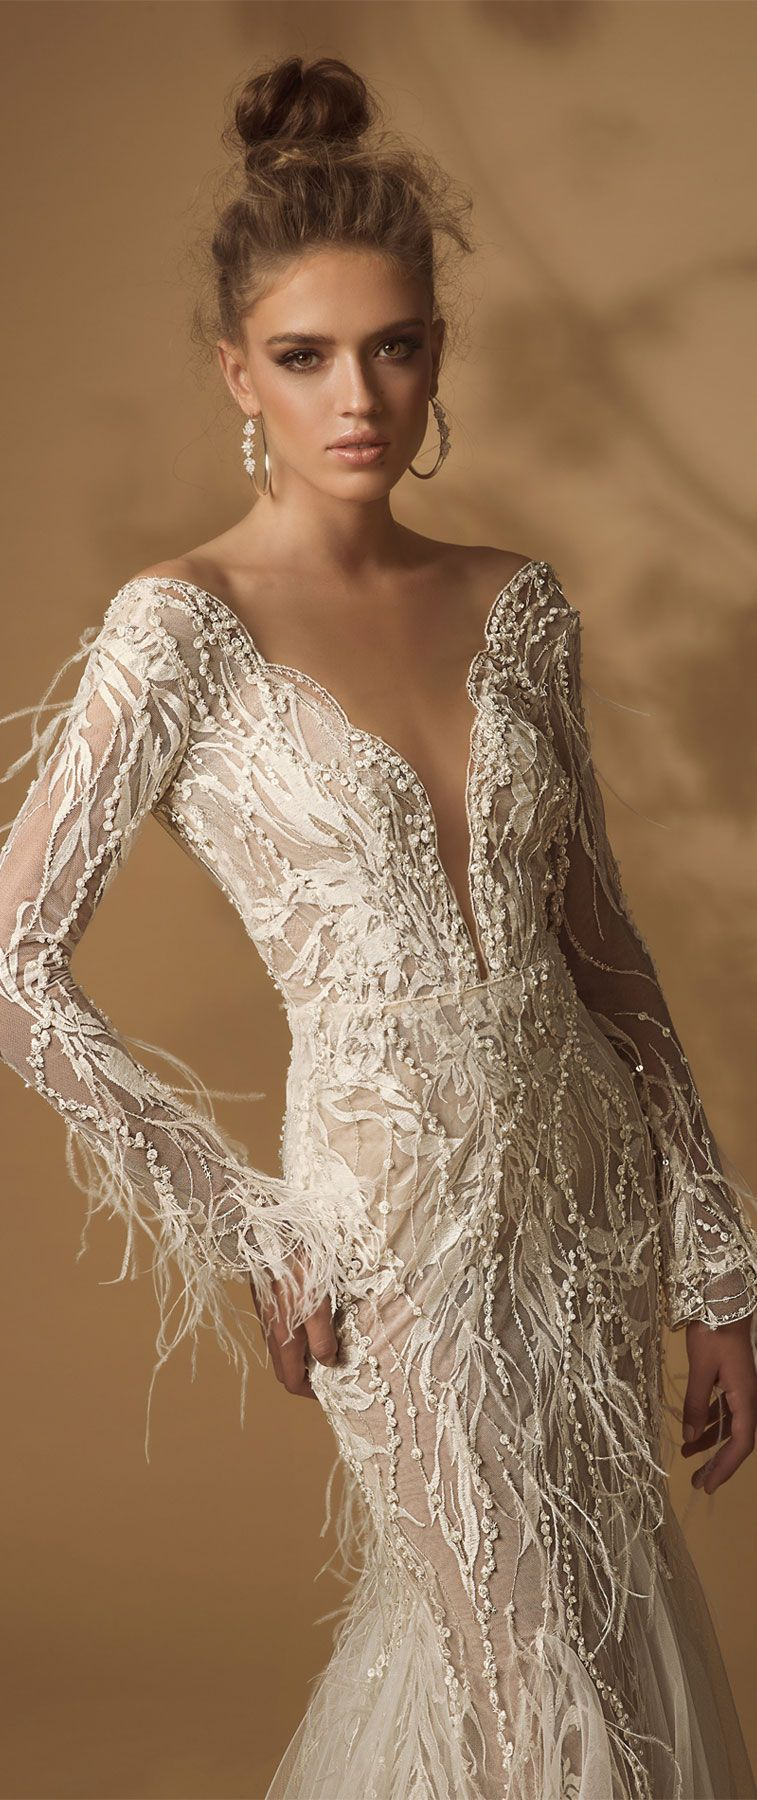 Long sleeve heavy embellishment fit and flare wedding dress #wedding #weddingdress #weddinggown